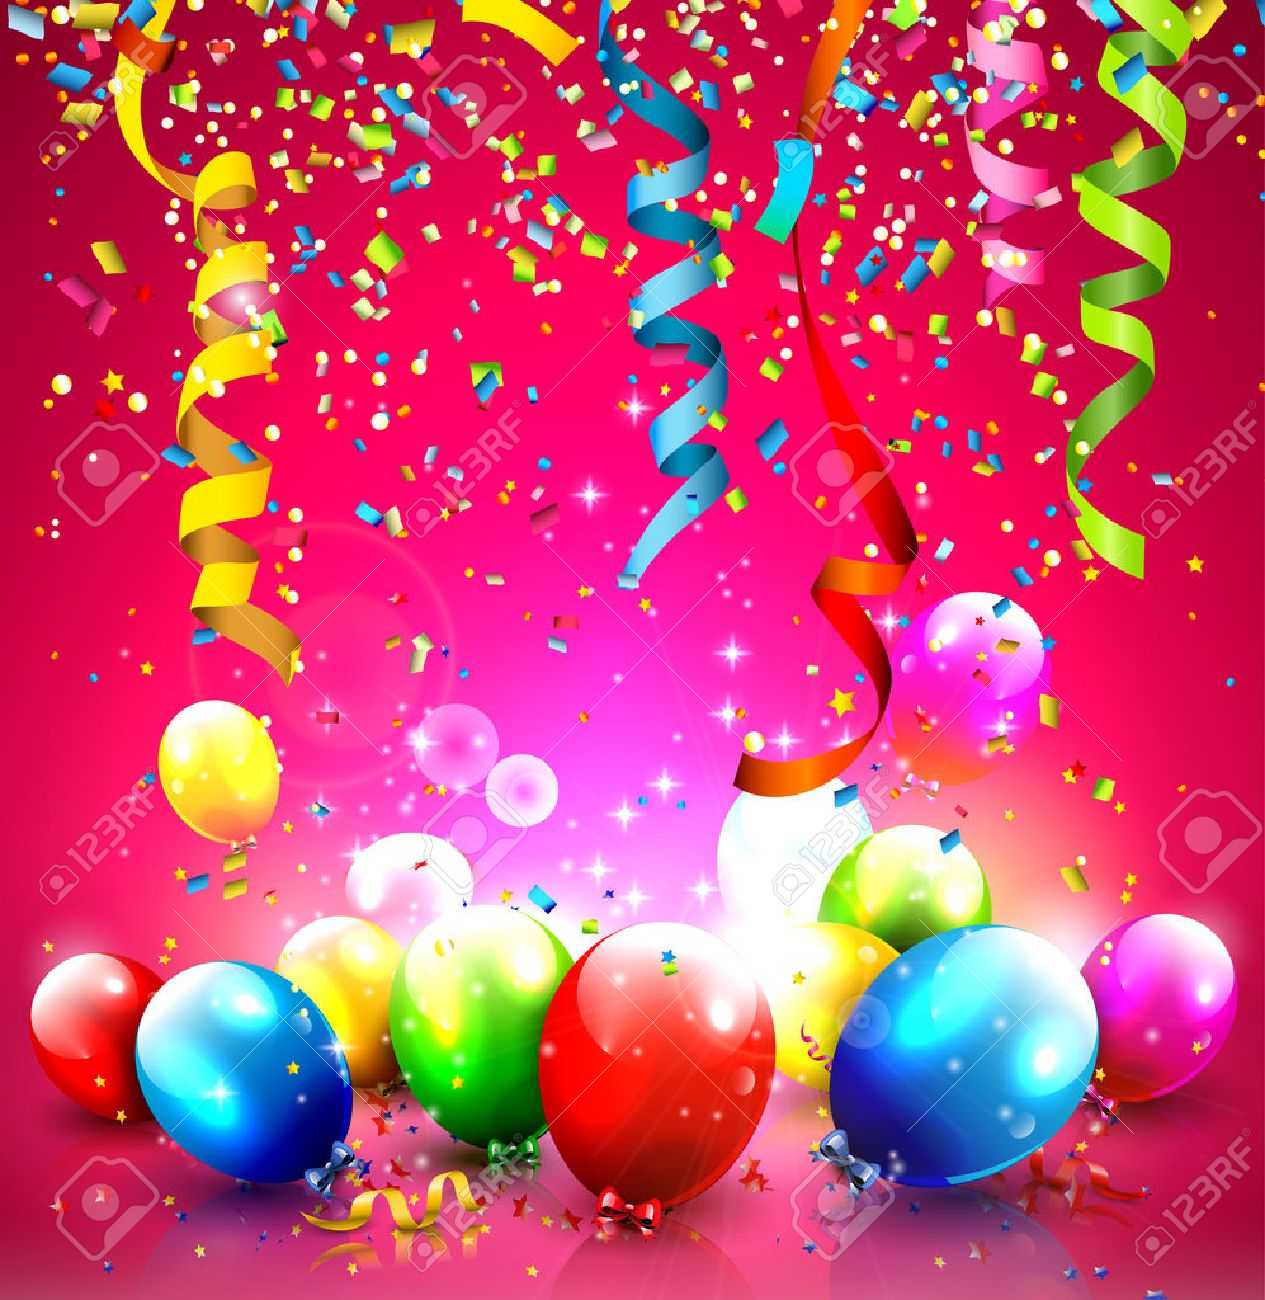 Birthday background with colorful balloons and confetti - 25434255